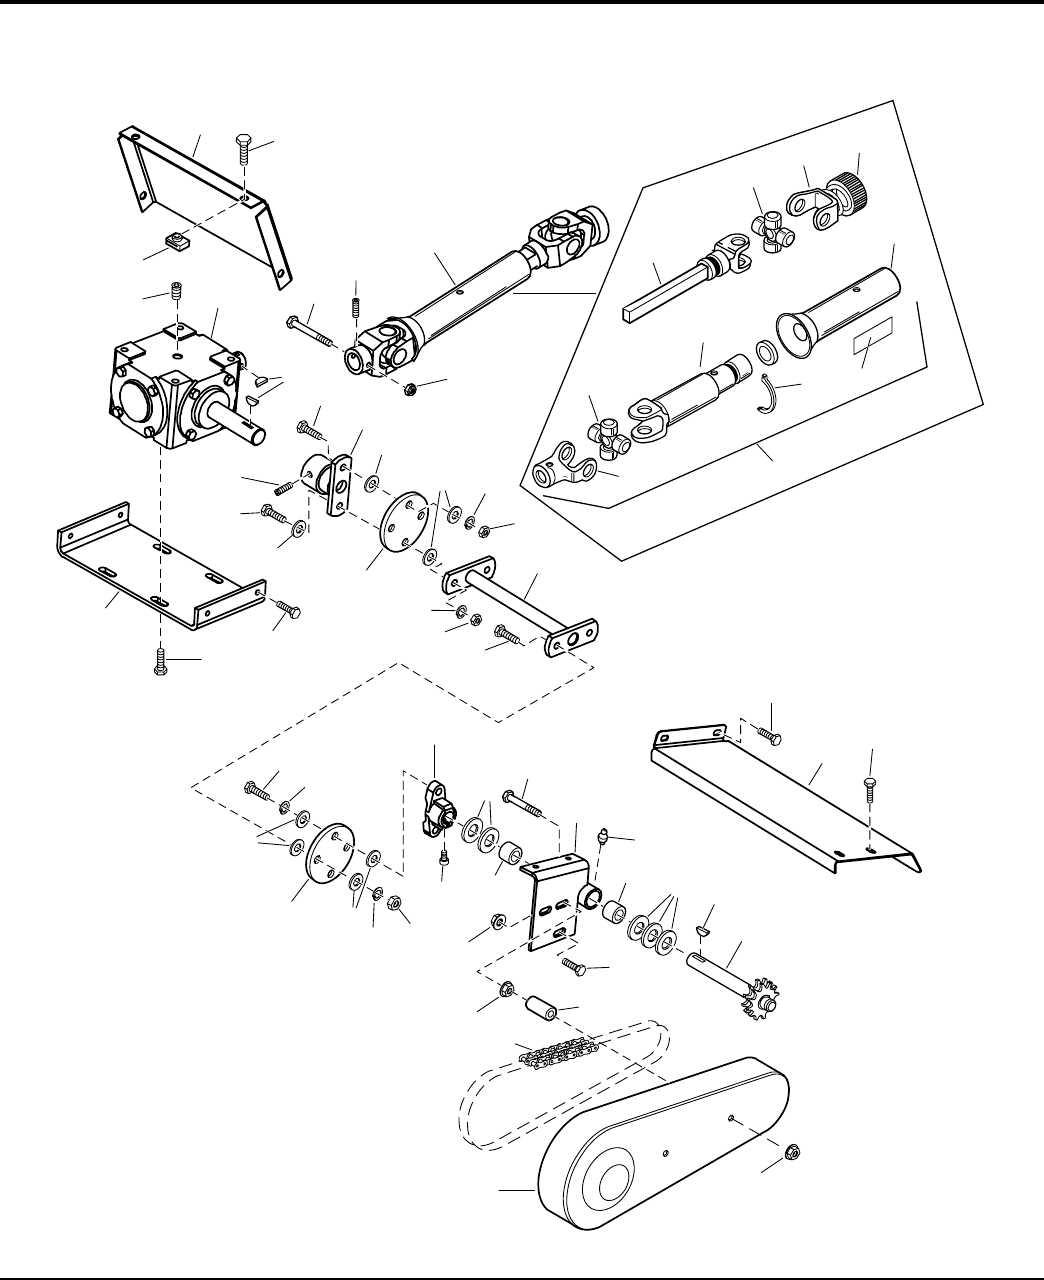 Page 6 of Simplicity Snow Blower Attachment 1694403 User